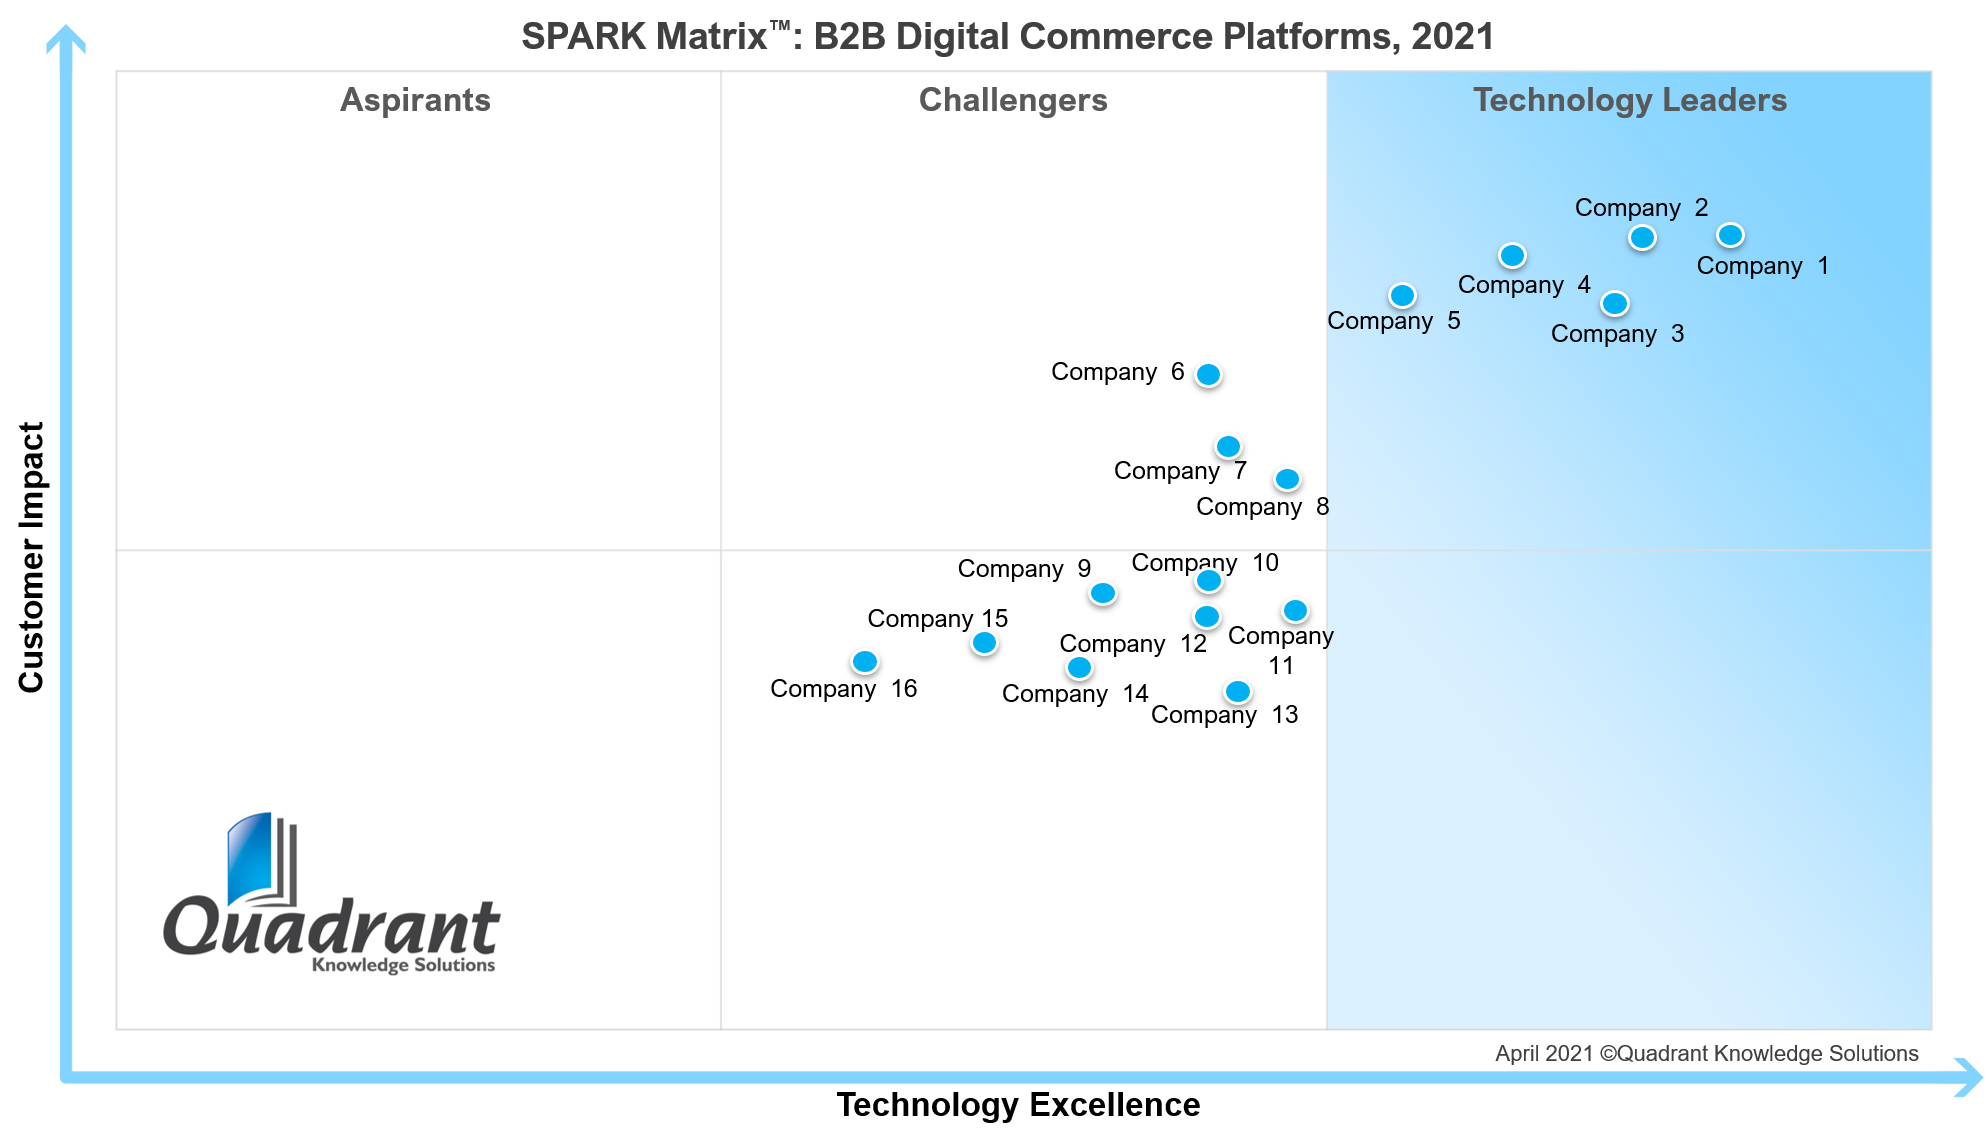 SPARK-Matrix_B2B-Digital-Commerce-Platforms-2021